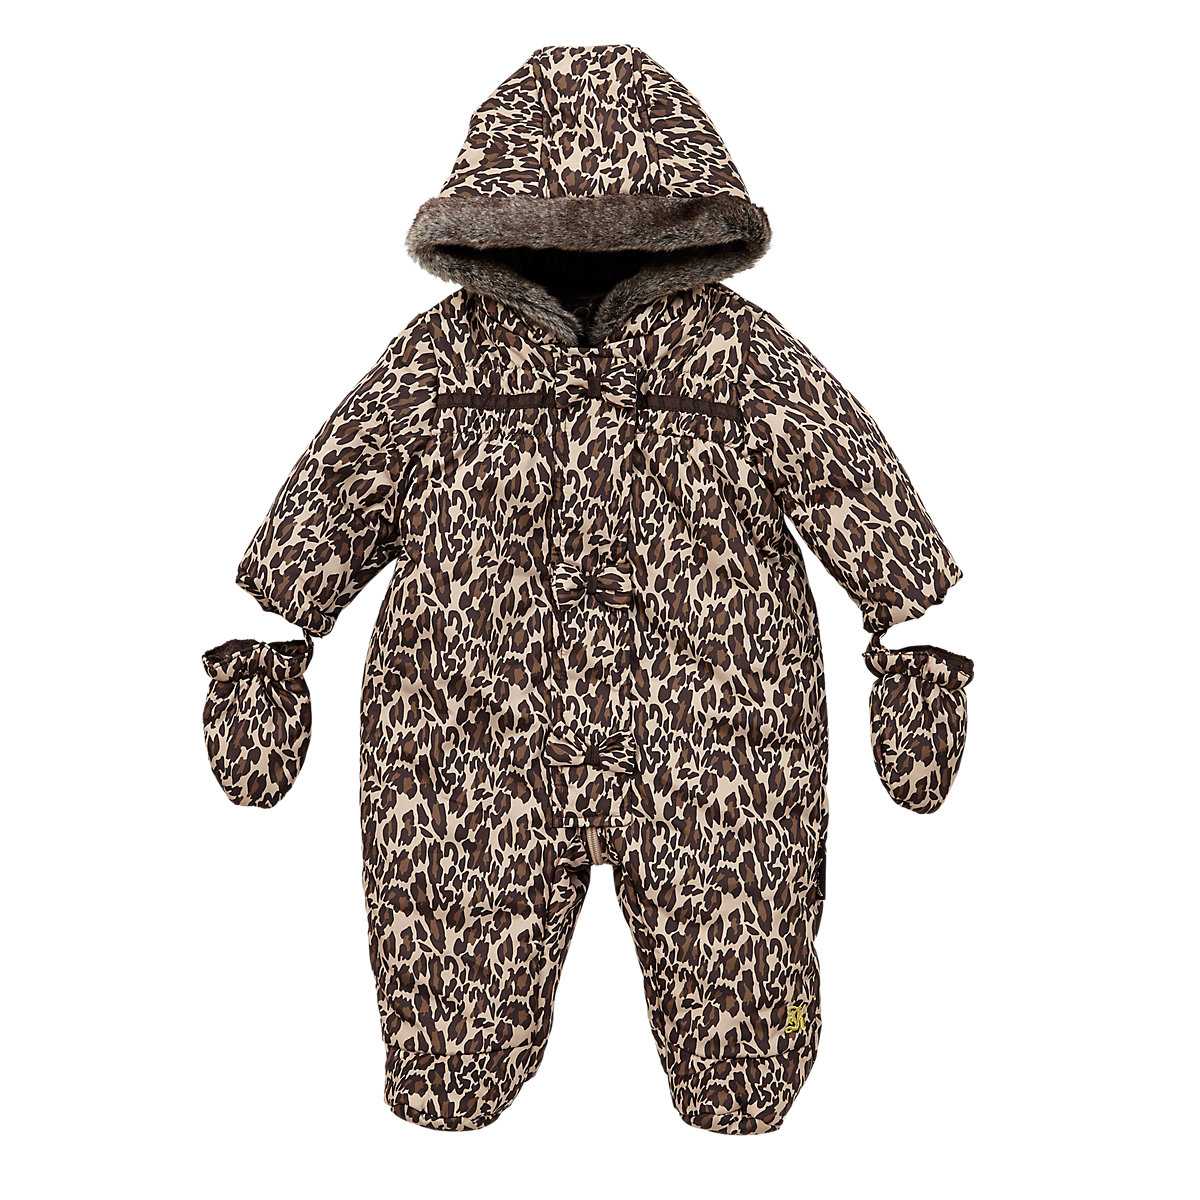 Carters Infant Girls 2 Piece Snow Bibs & Winter Coat Set Animal Print Snowsuit. $ + London Fog Baby Girls' Pink Snow Pants. $ Choose Options. London Fog Baby Girls' 2-Piece Snowsuit - periwinkle, 12 months. Carters Infant Baby Girl Leopard Print Hooded Ski Jacket Quilted Puffer Coat.